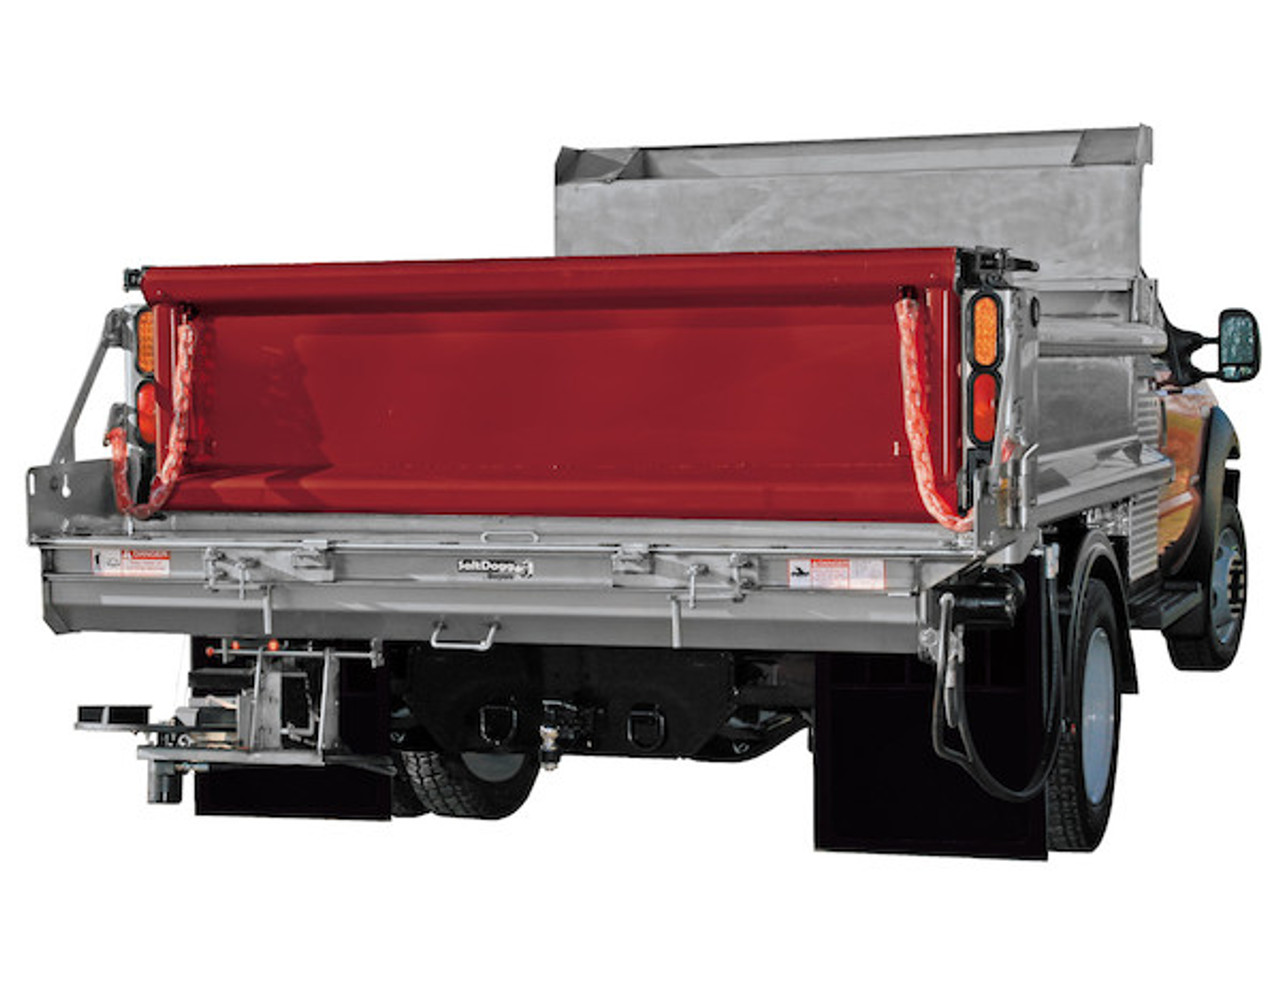 92421SSA BUYERS SALTDOGG HYDRAULIC UNDER TAILGATE SPREADER WITH EXTENDED END PLATES WITH STANDARD DISCHARGE